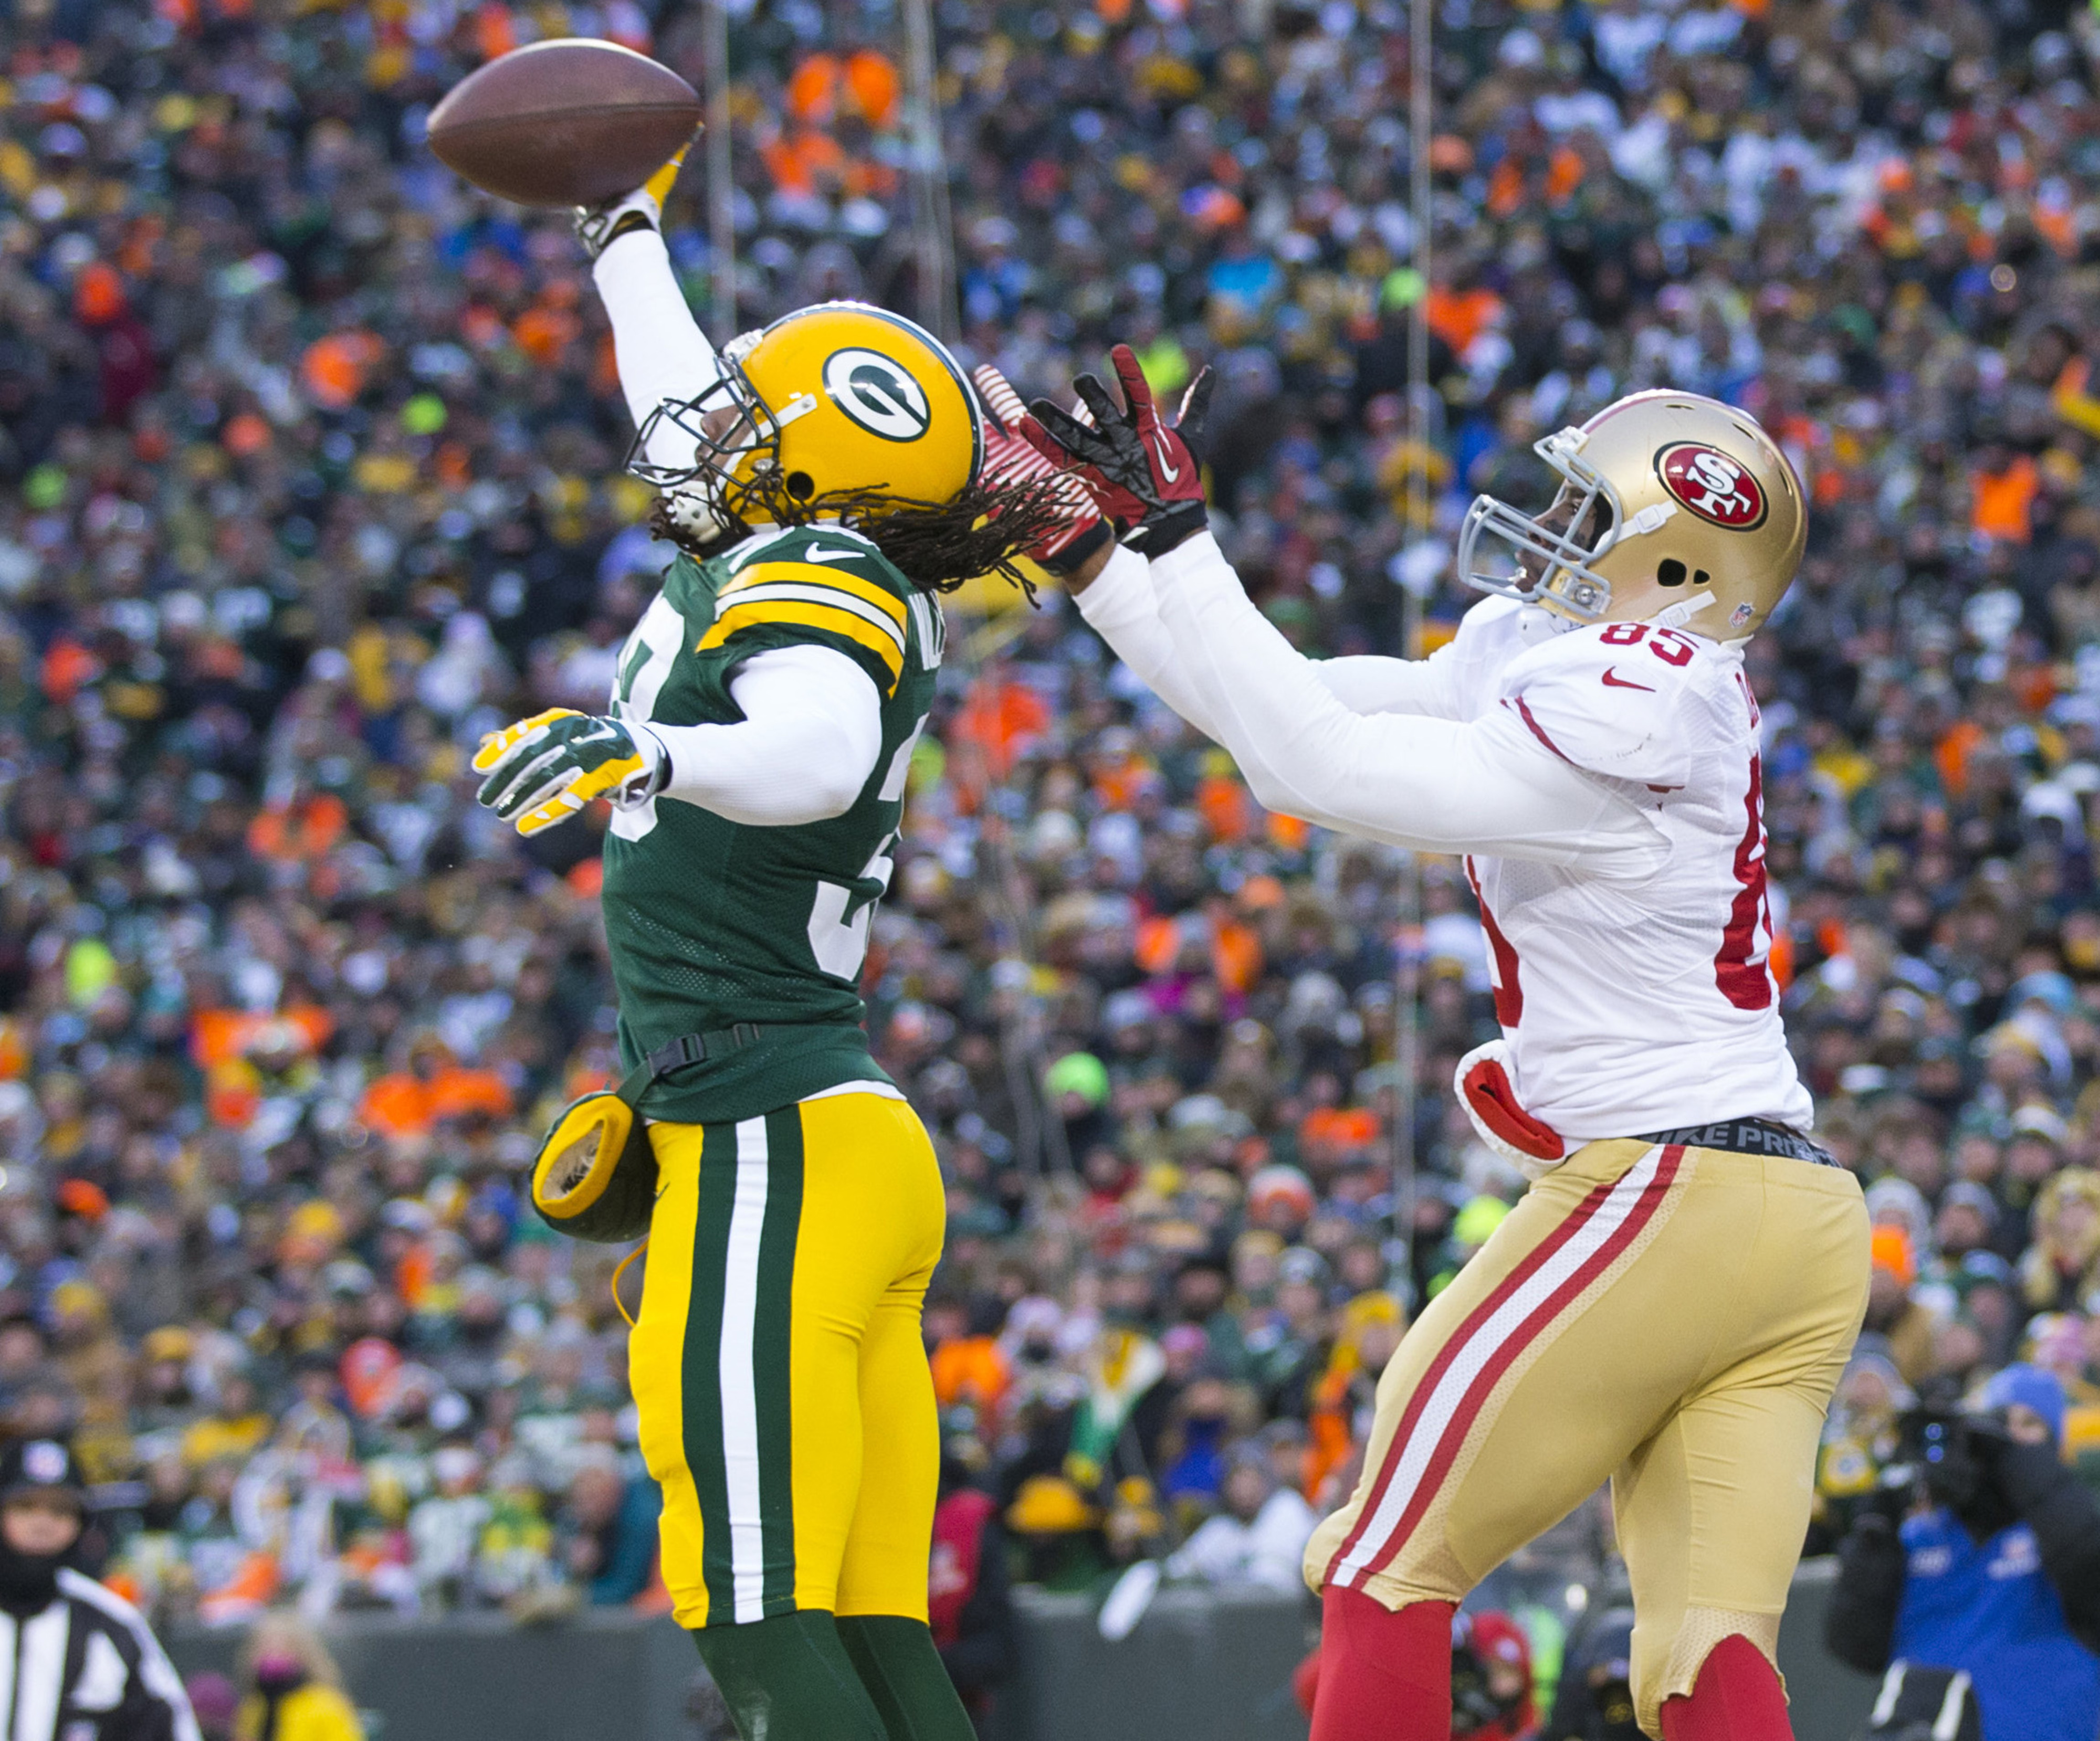 Tramon Williams breaks up a pass in the Packers Wild Card Matchup against San Francisco